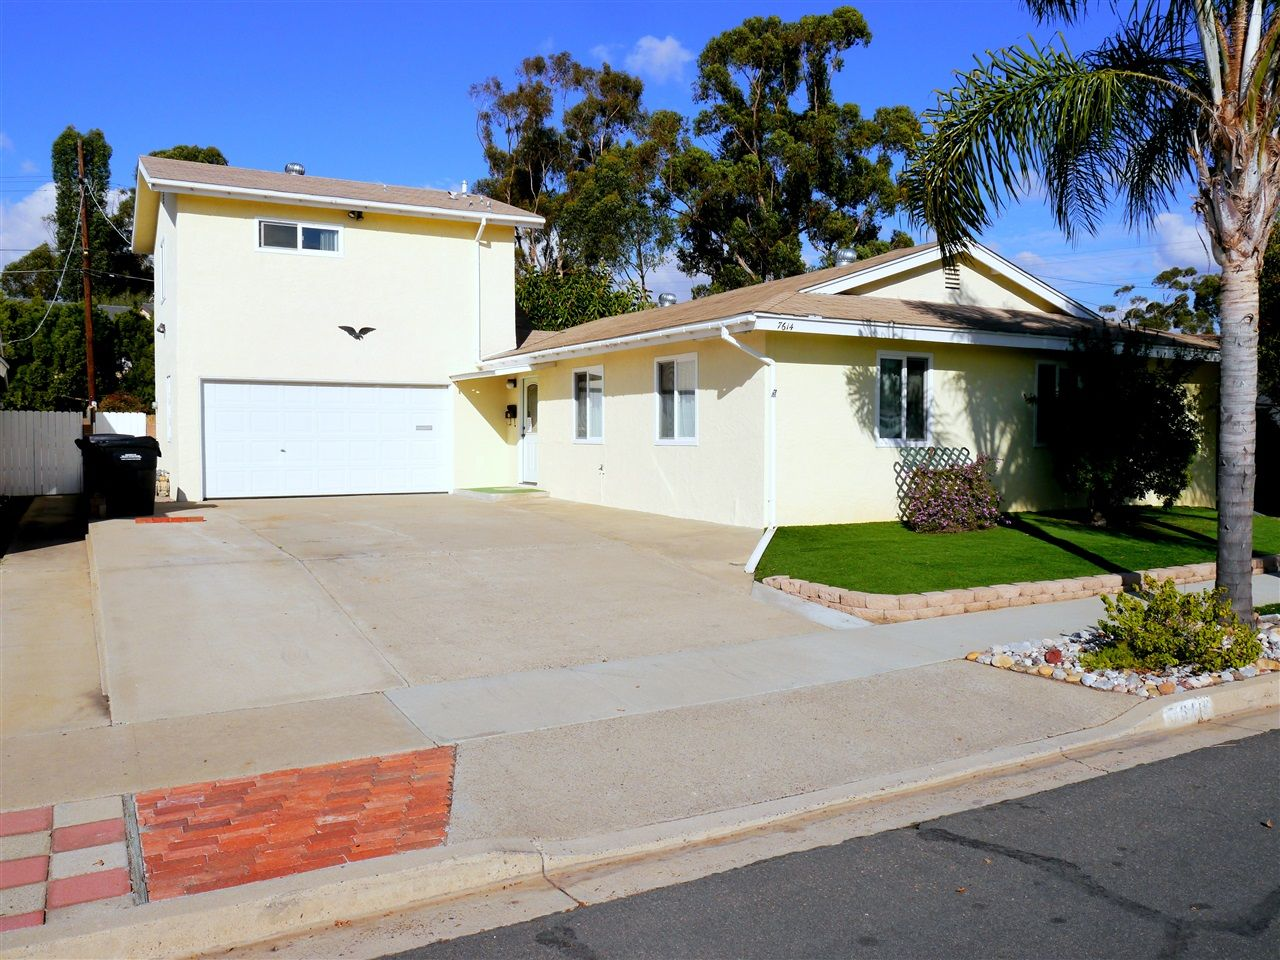 Main Photo: House for sale : 4 bedrooms : 7614 Beal St. in San Diego